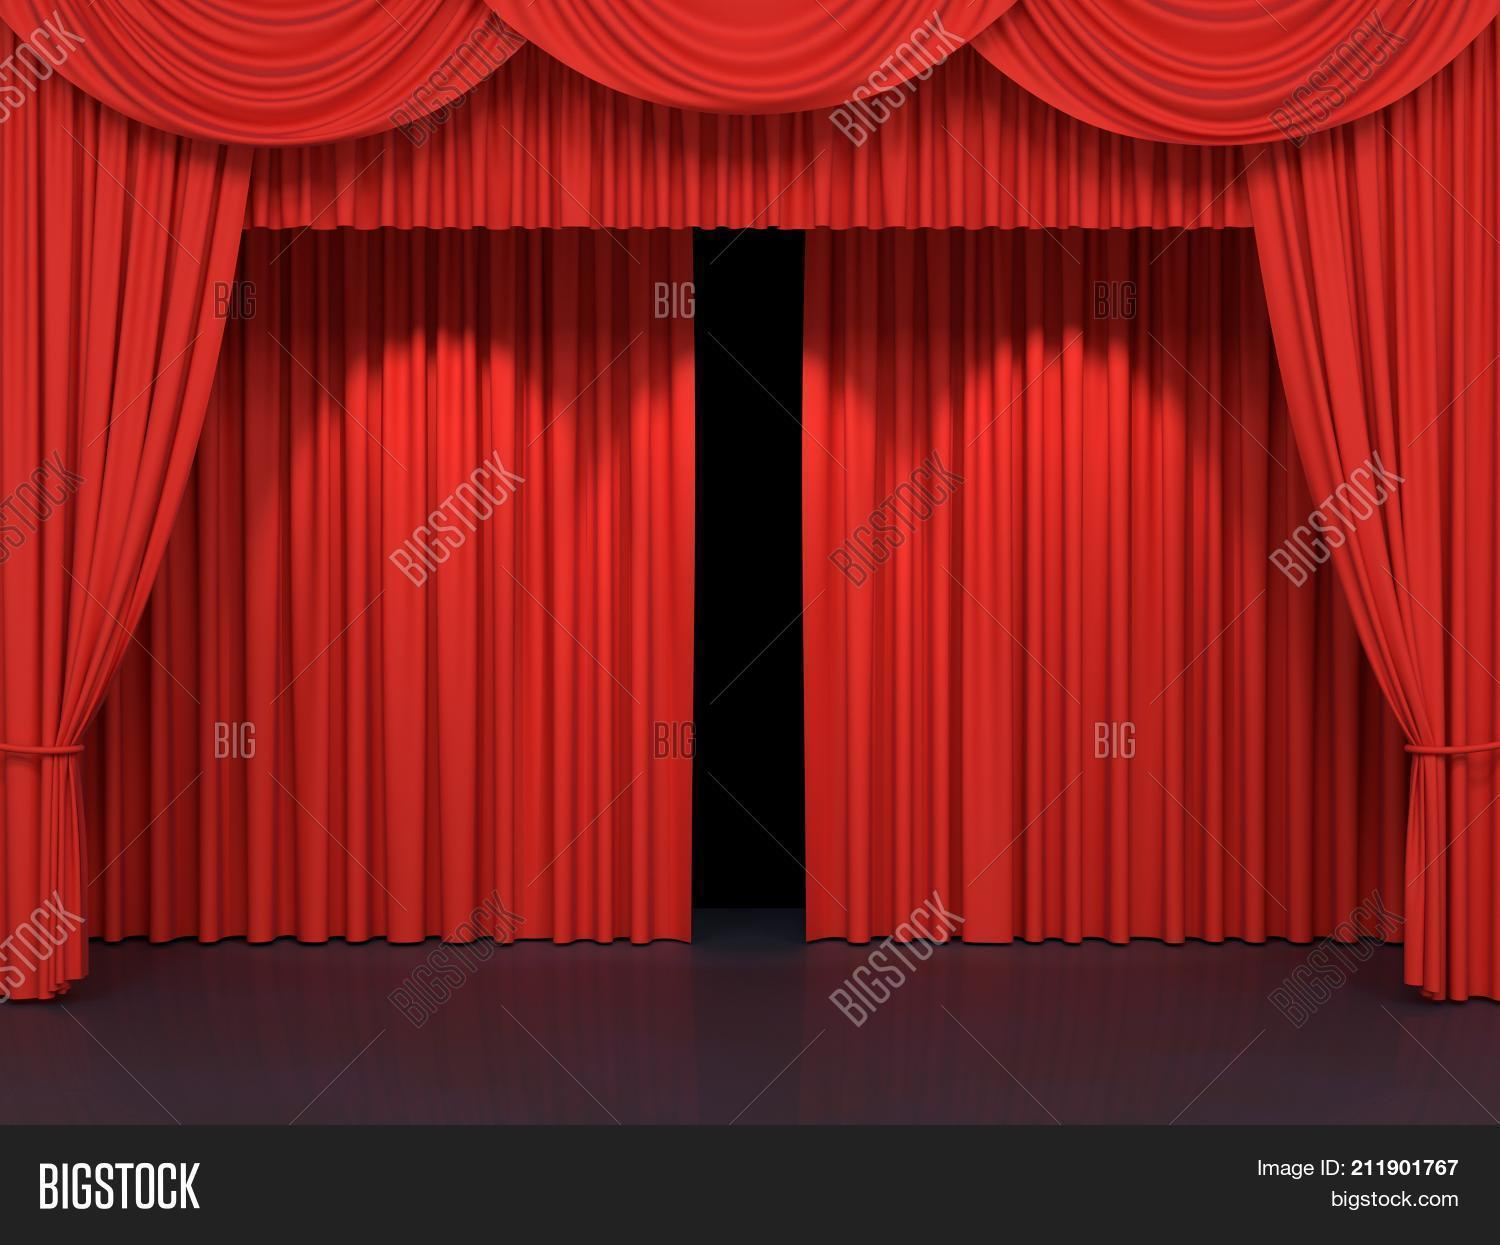 Red Stage Curtains Luxury Velvet Drapes Silk Drapery Realistic Closed Theatrical Cinema